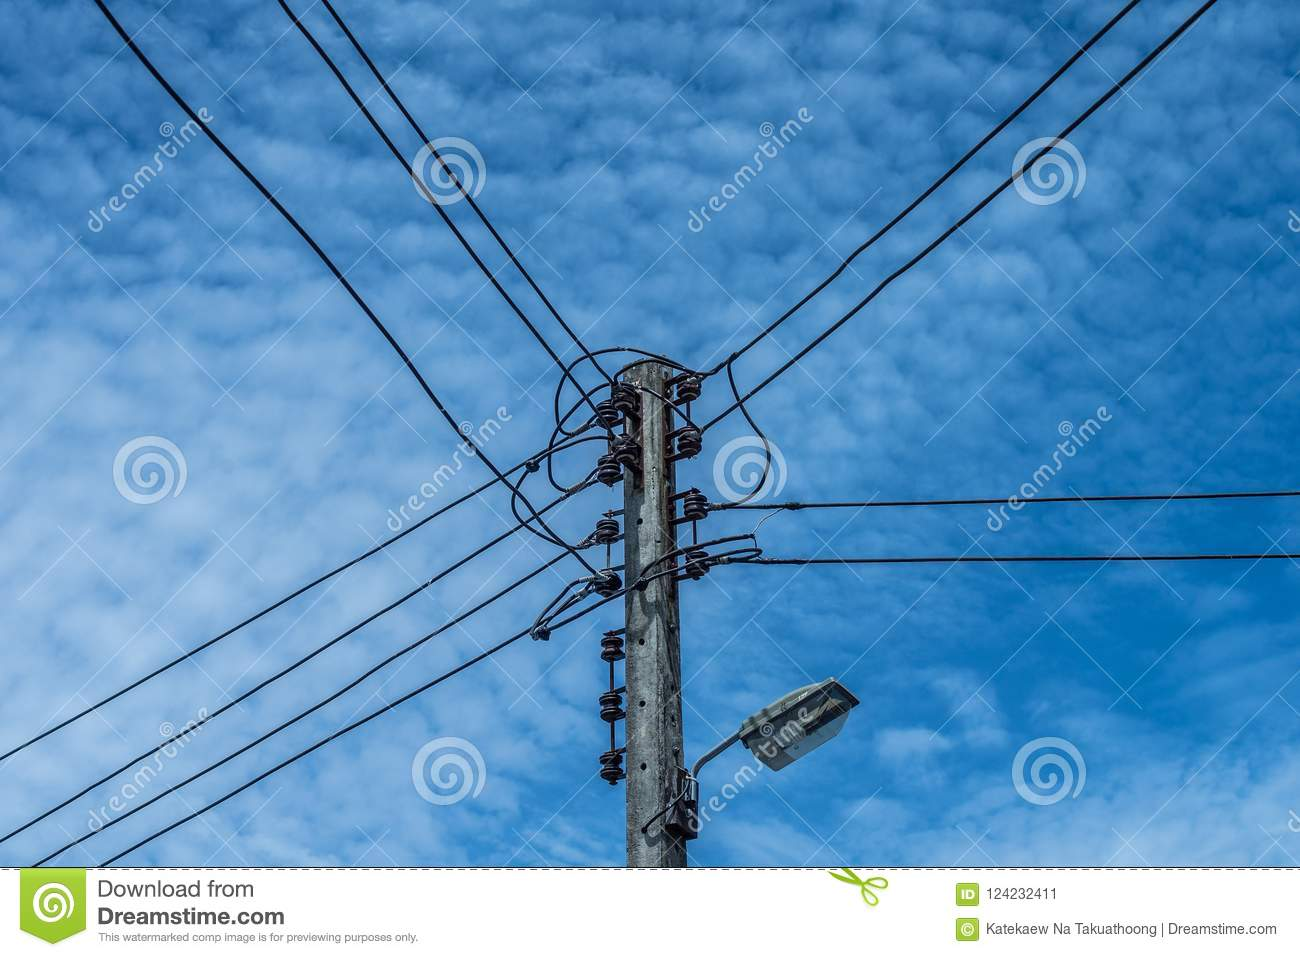 hight resolution of electric wire and lamp on electrical pole